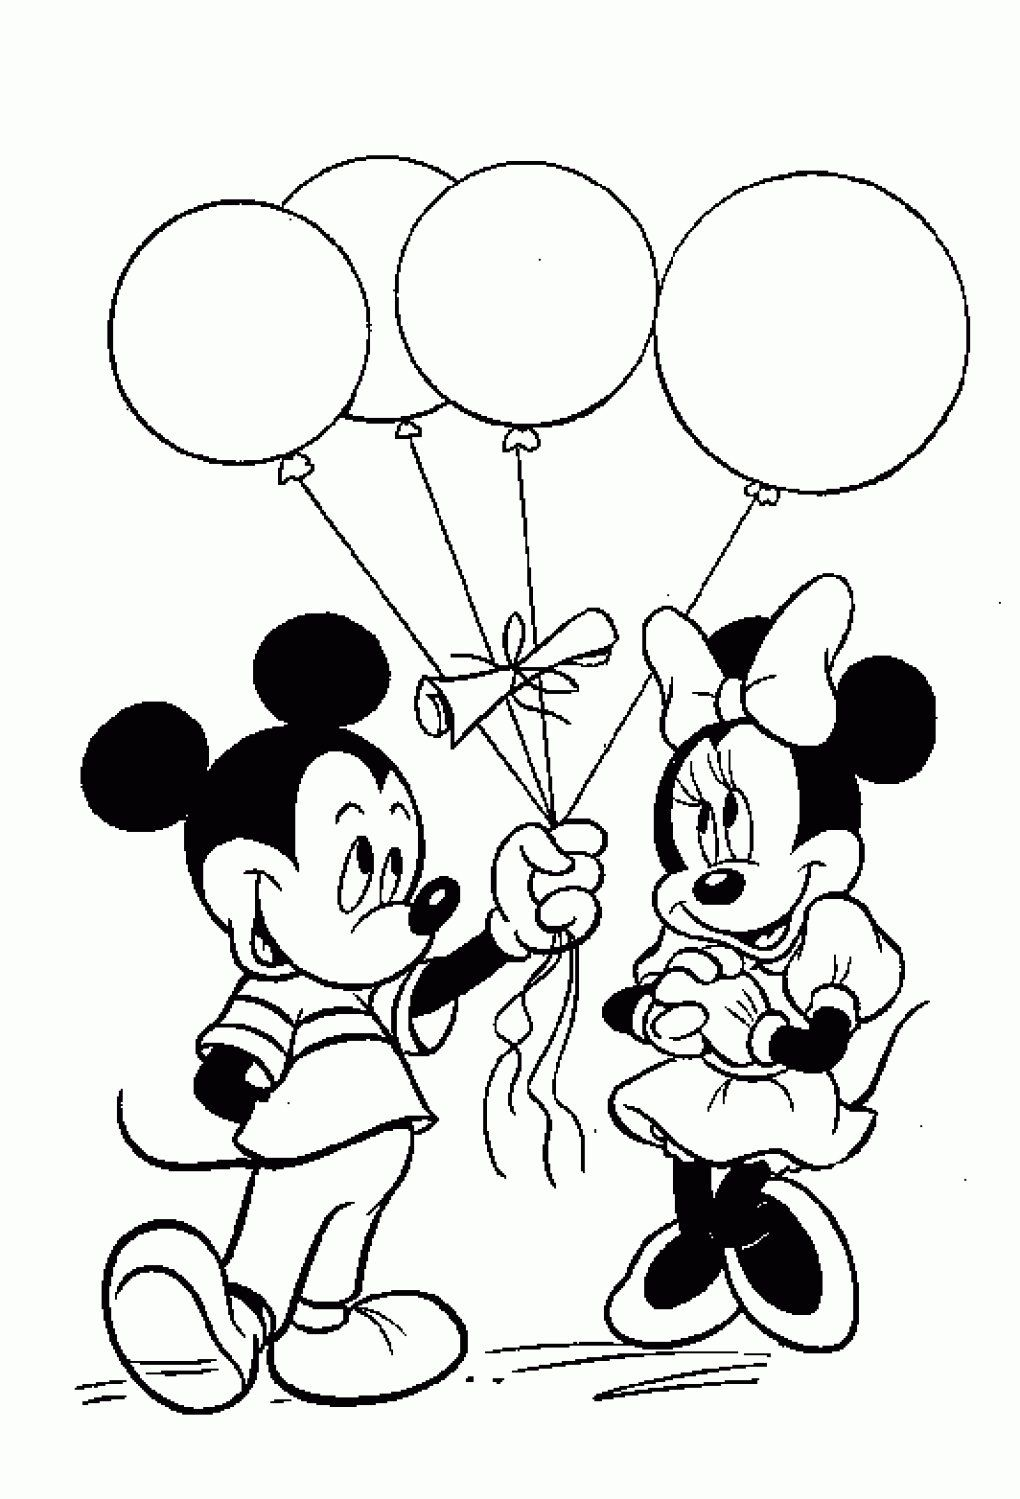 mickey and minnie mouse birthday coloring pages | praying hands ...